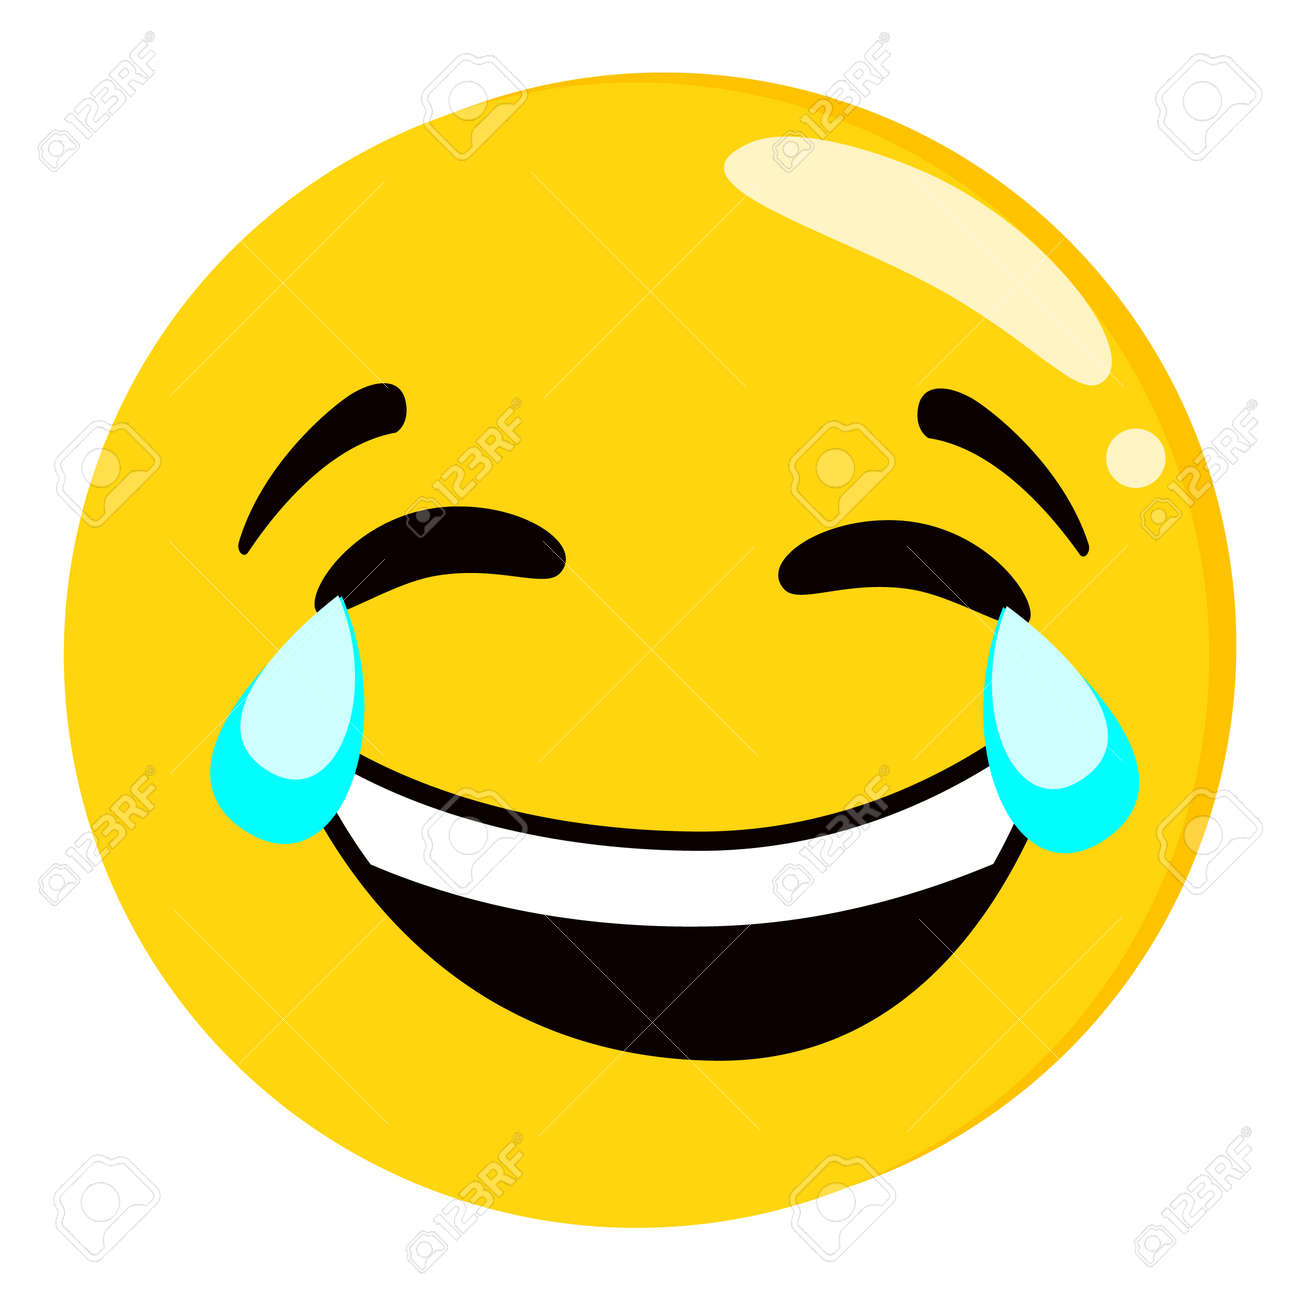 Yellow crying and laughing emoji isolated on white background. Emoticon or emoticon icon. Cute and funny round face expression smiling with tears for tex messages flat design vector illustration - 149385090